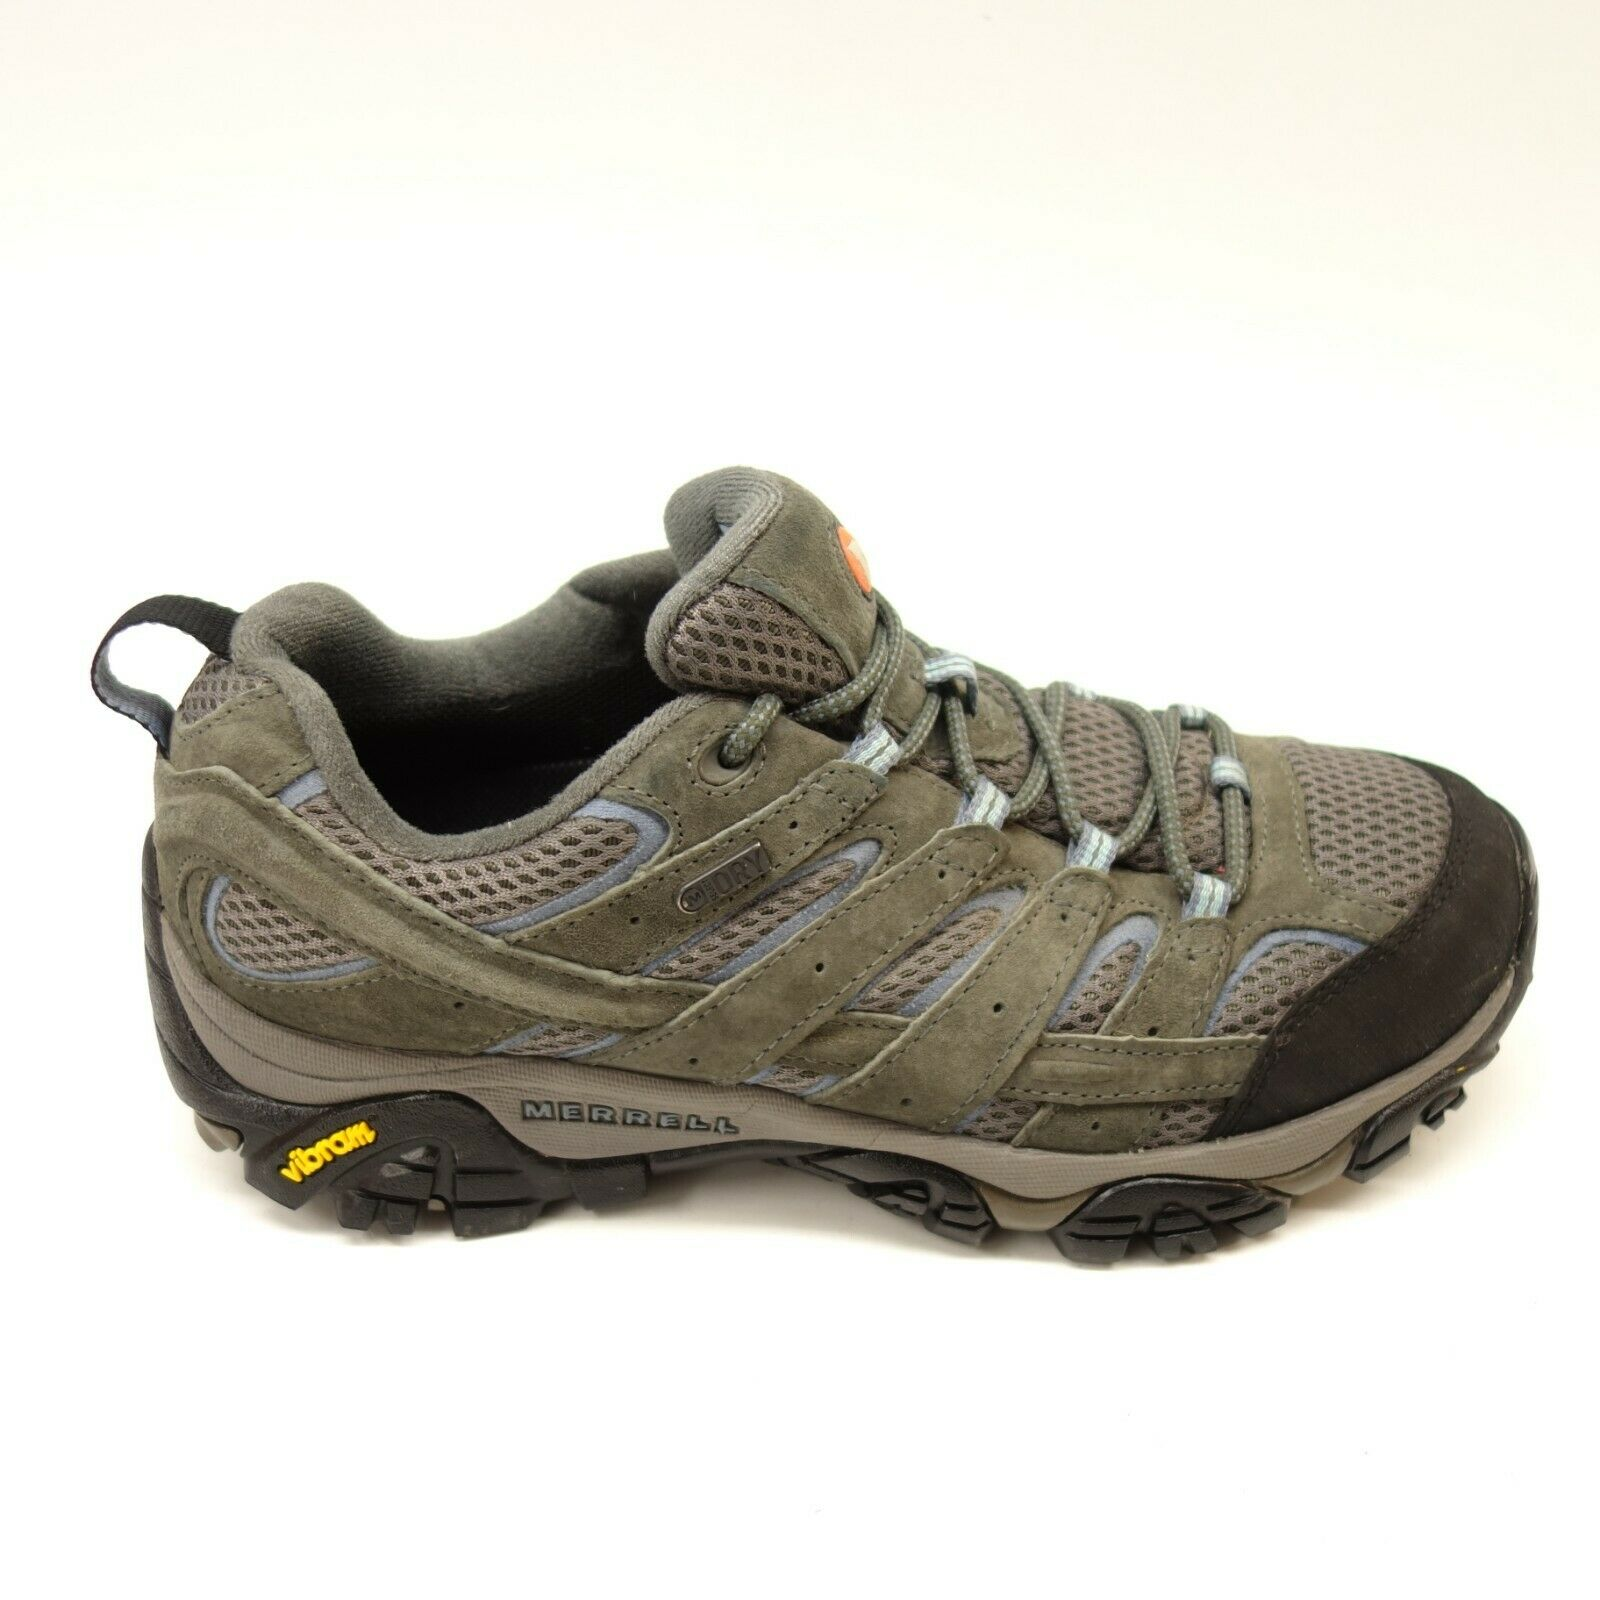 Merrell Mujer Moab bajo gris Azul Senderismo Impermeable